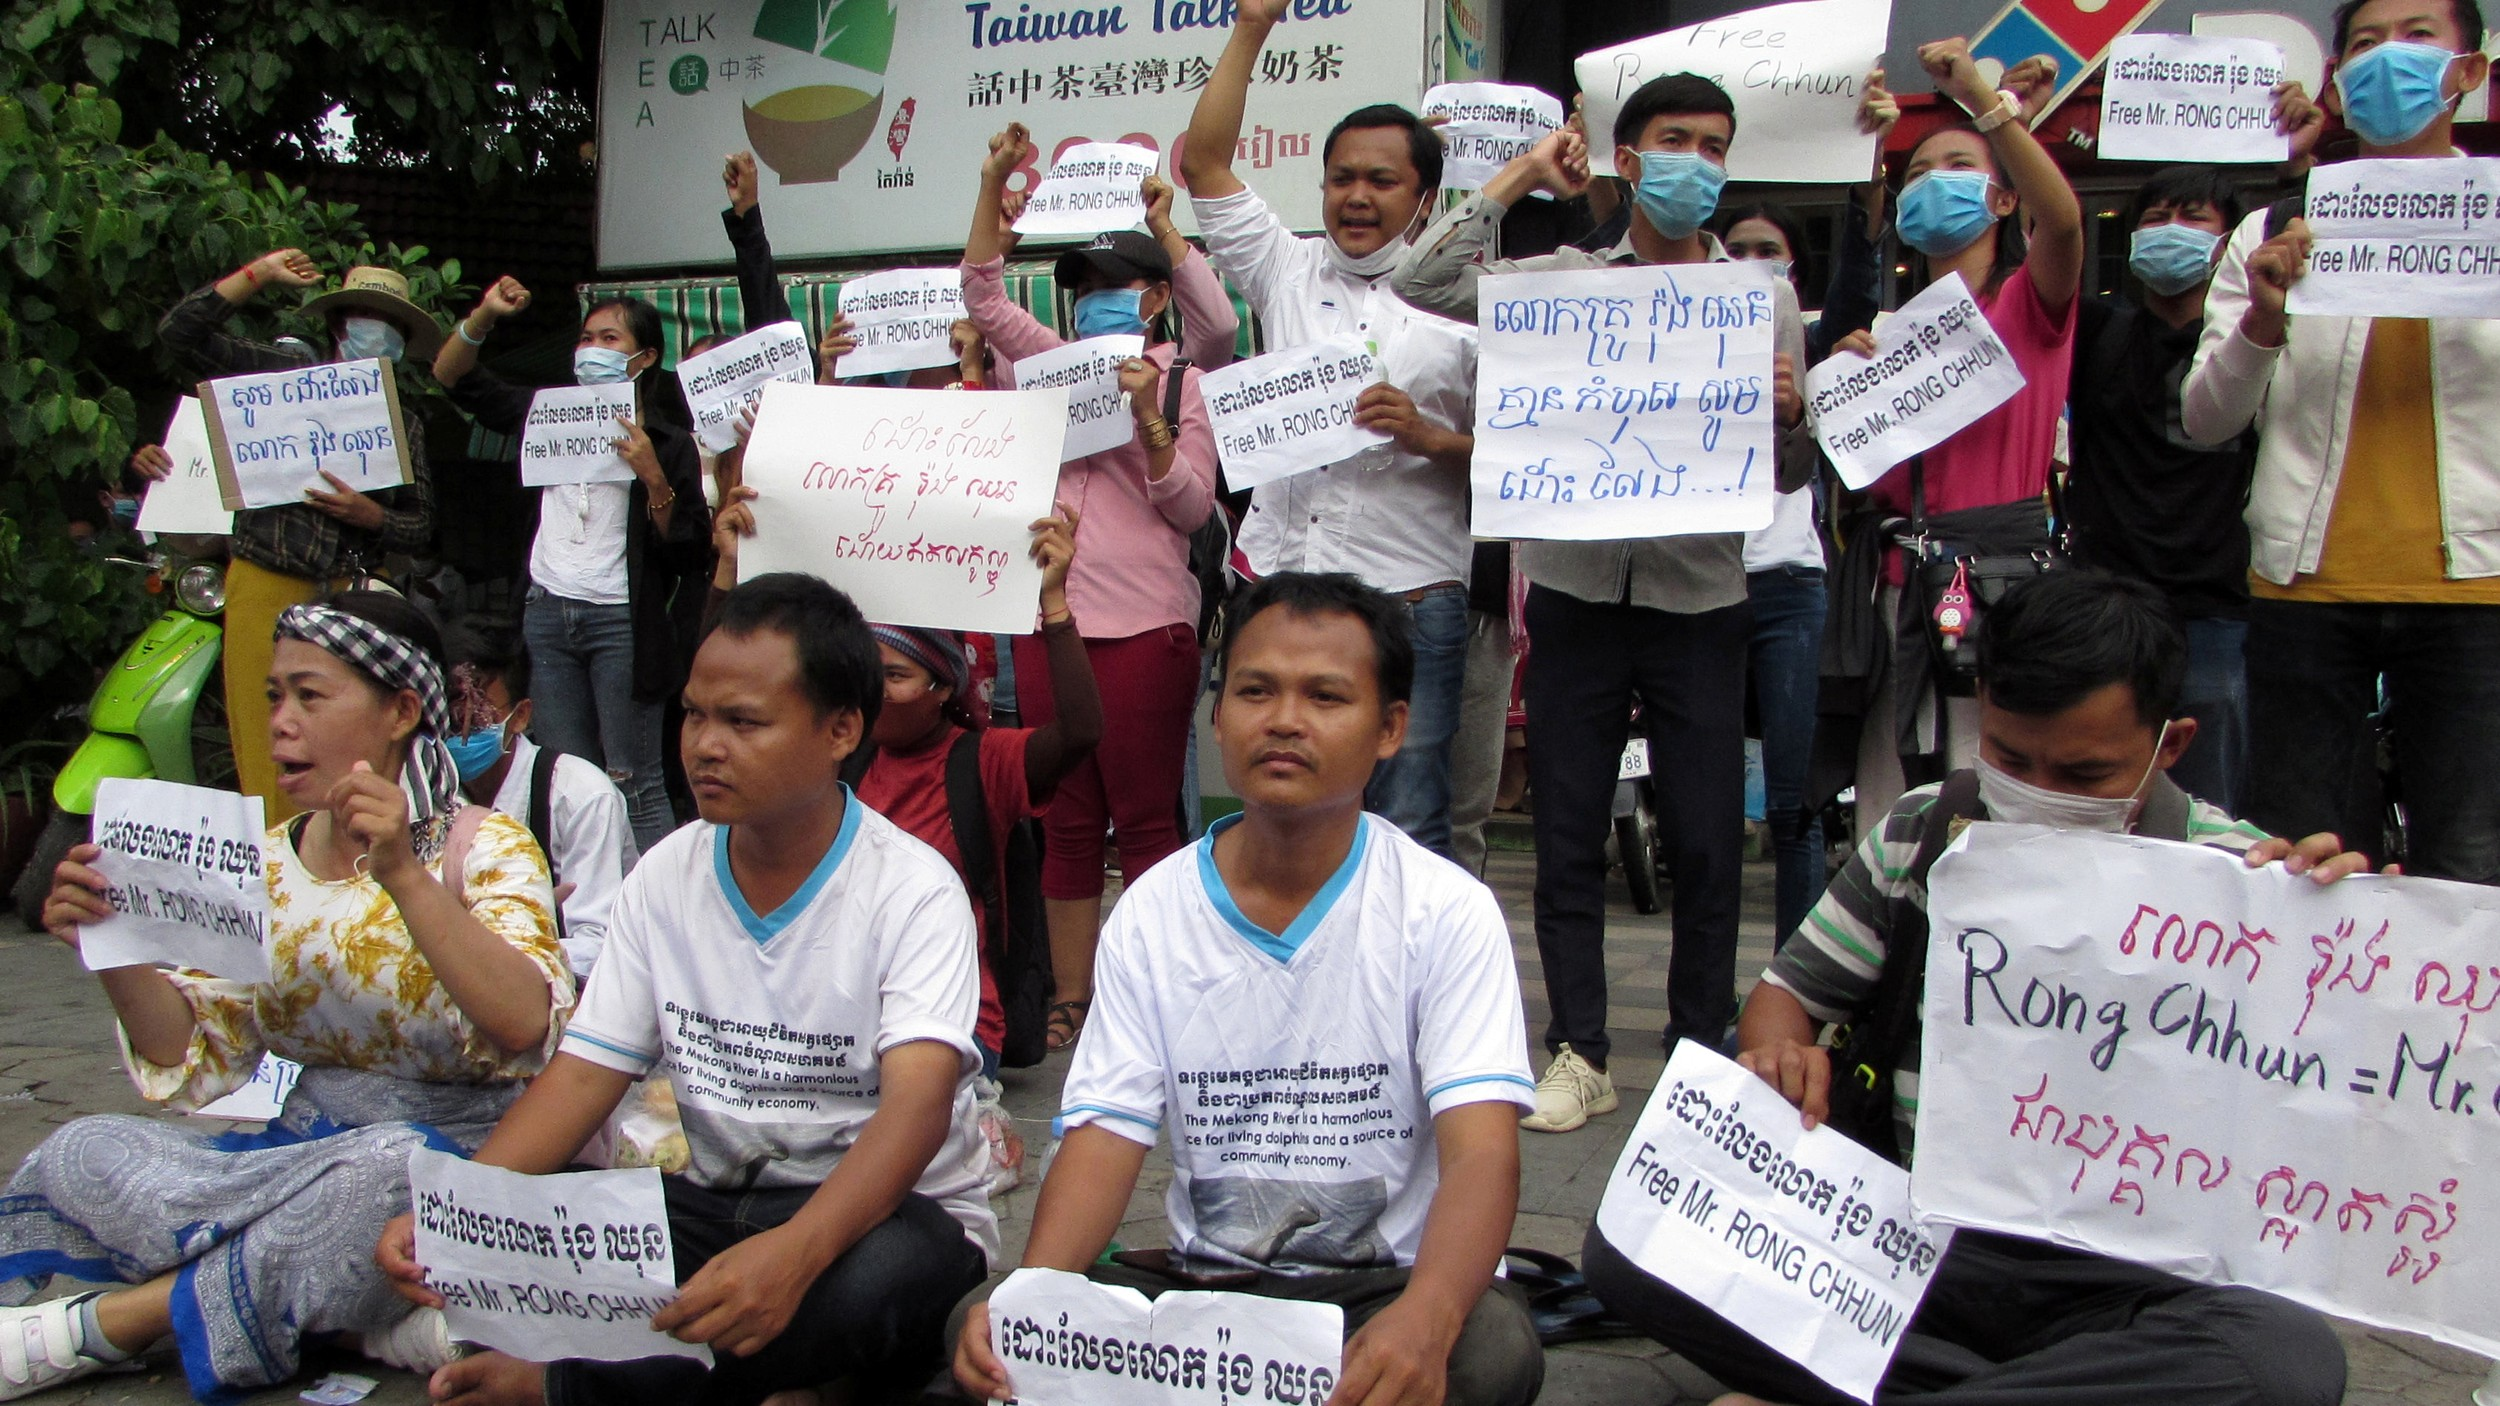 Supporters urge the government to release and drop charges against union leader Rong Chhun at a protest in Phnom Penh, Aug. 3, 2020.